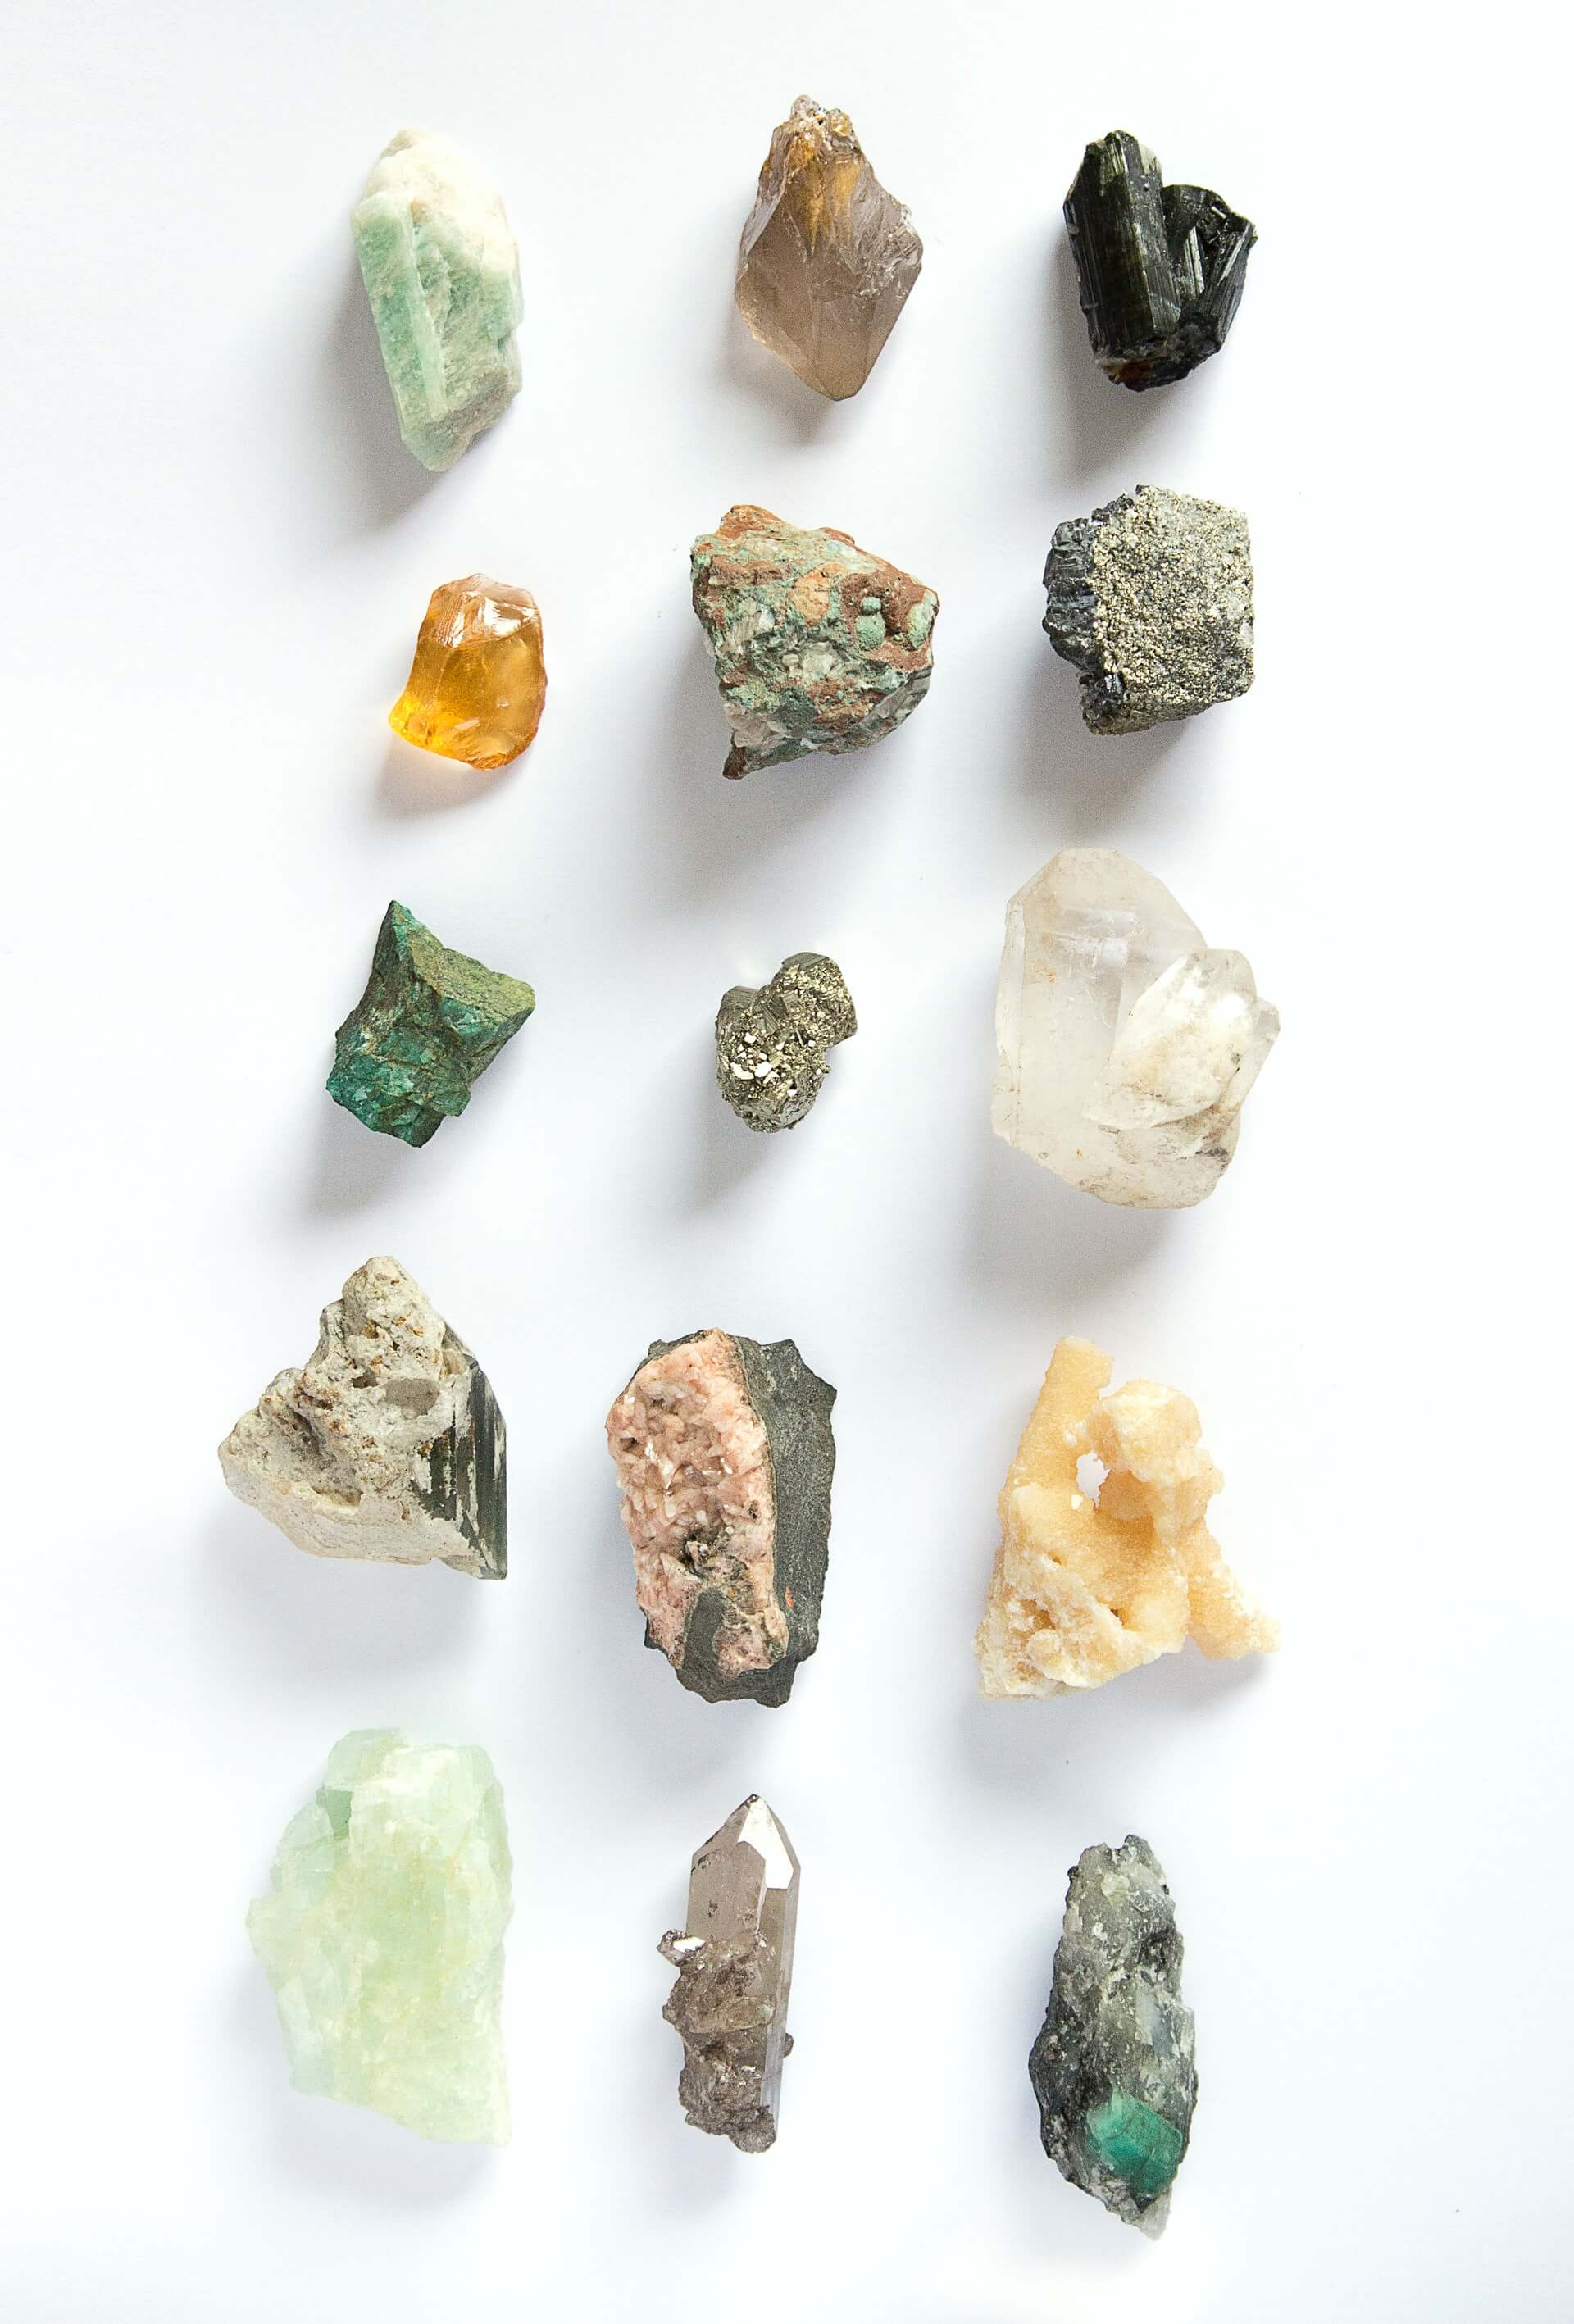 different types of raw and unpolished precious stones and rocks